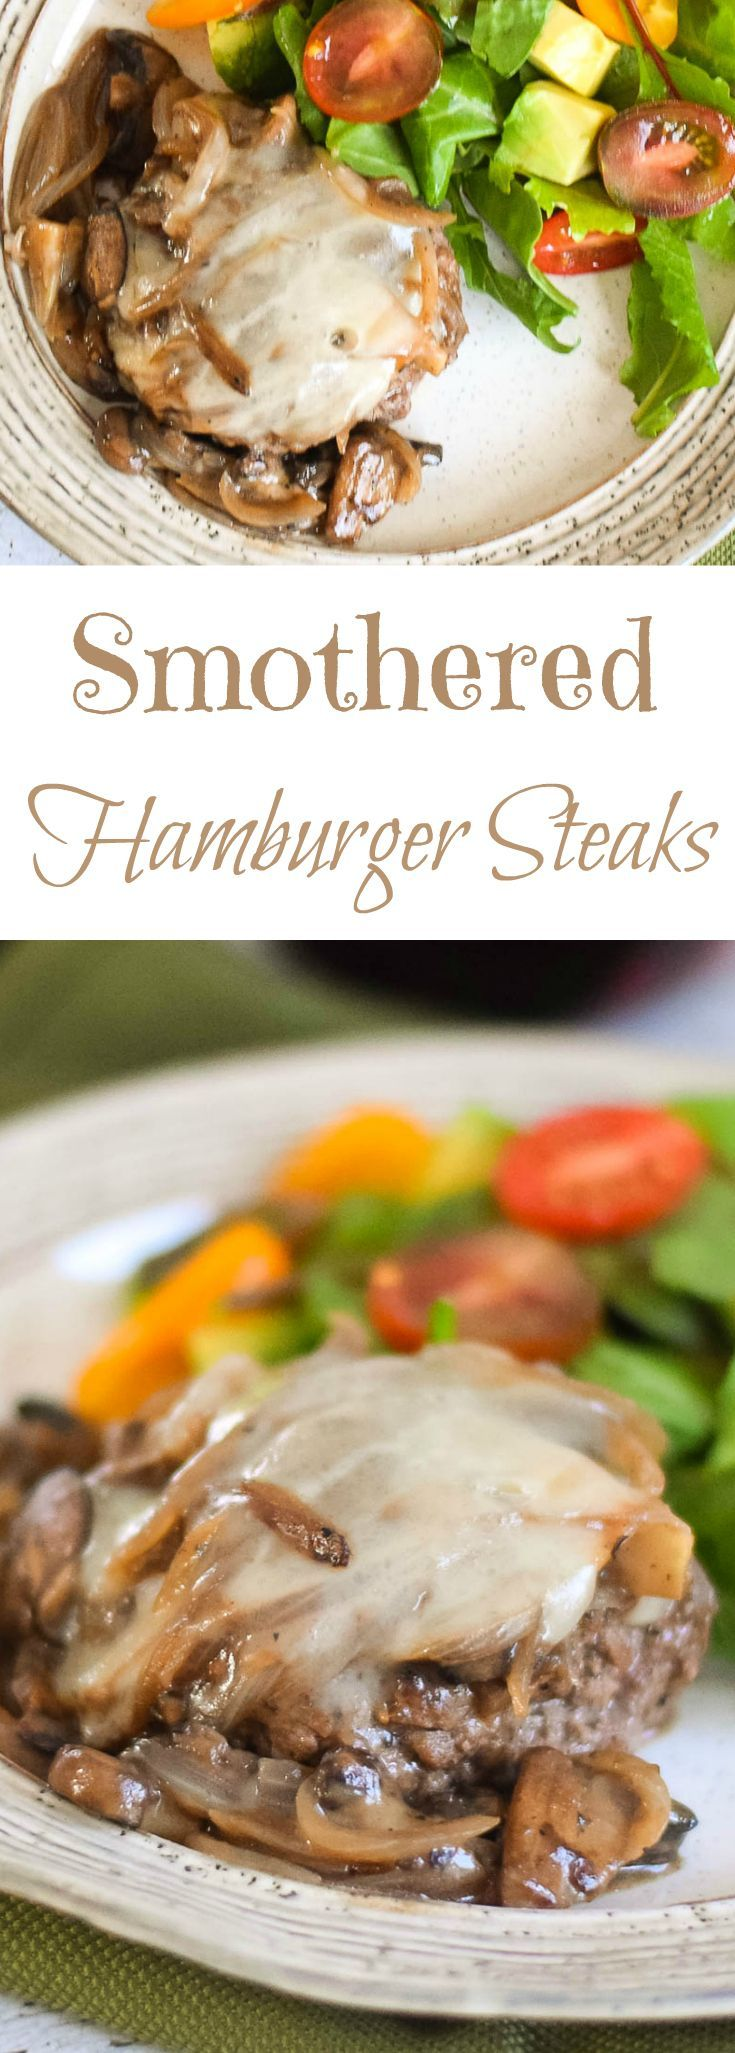 Smothered Hamburger Steaks -Sweet onions cooked to a caramel goodness, topped with sauteed mushrooms and cheese covered lean hamburger! #SundaySupper #BestBeef #CertifiedAngusBeef